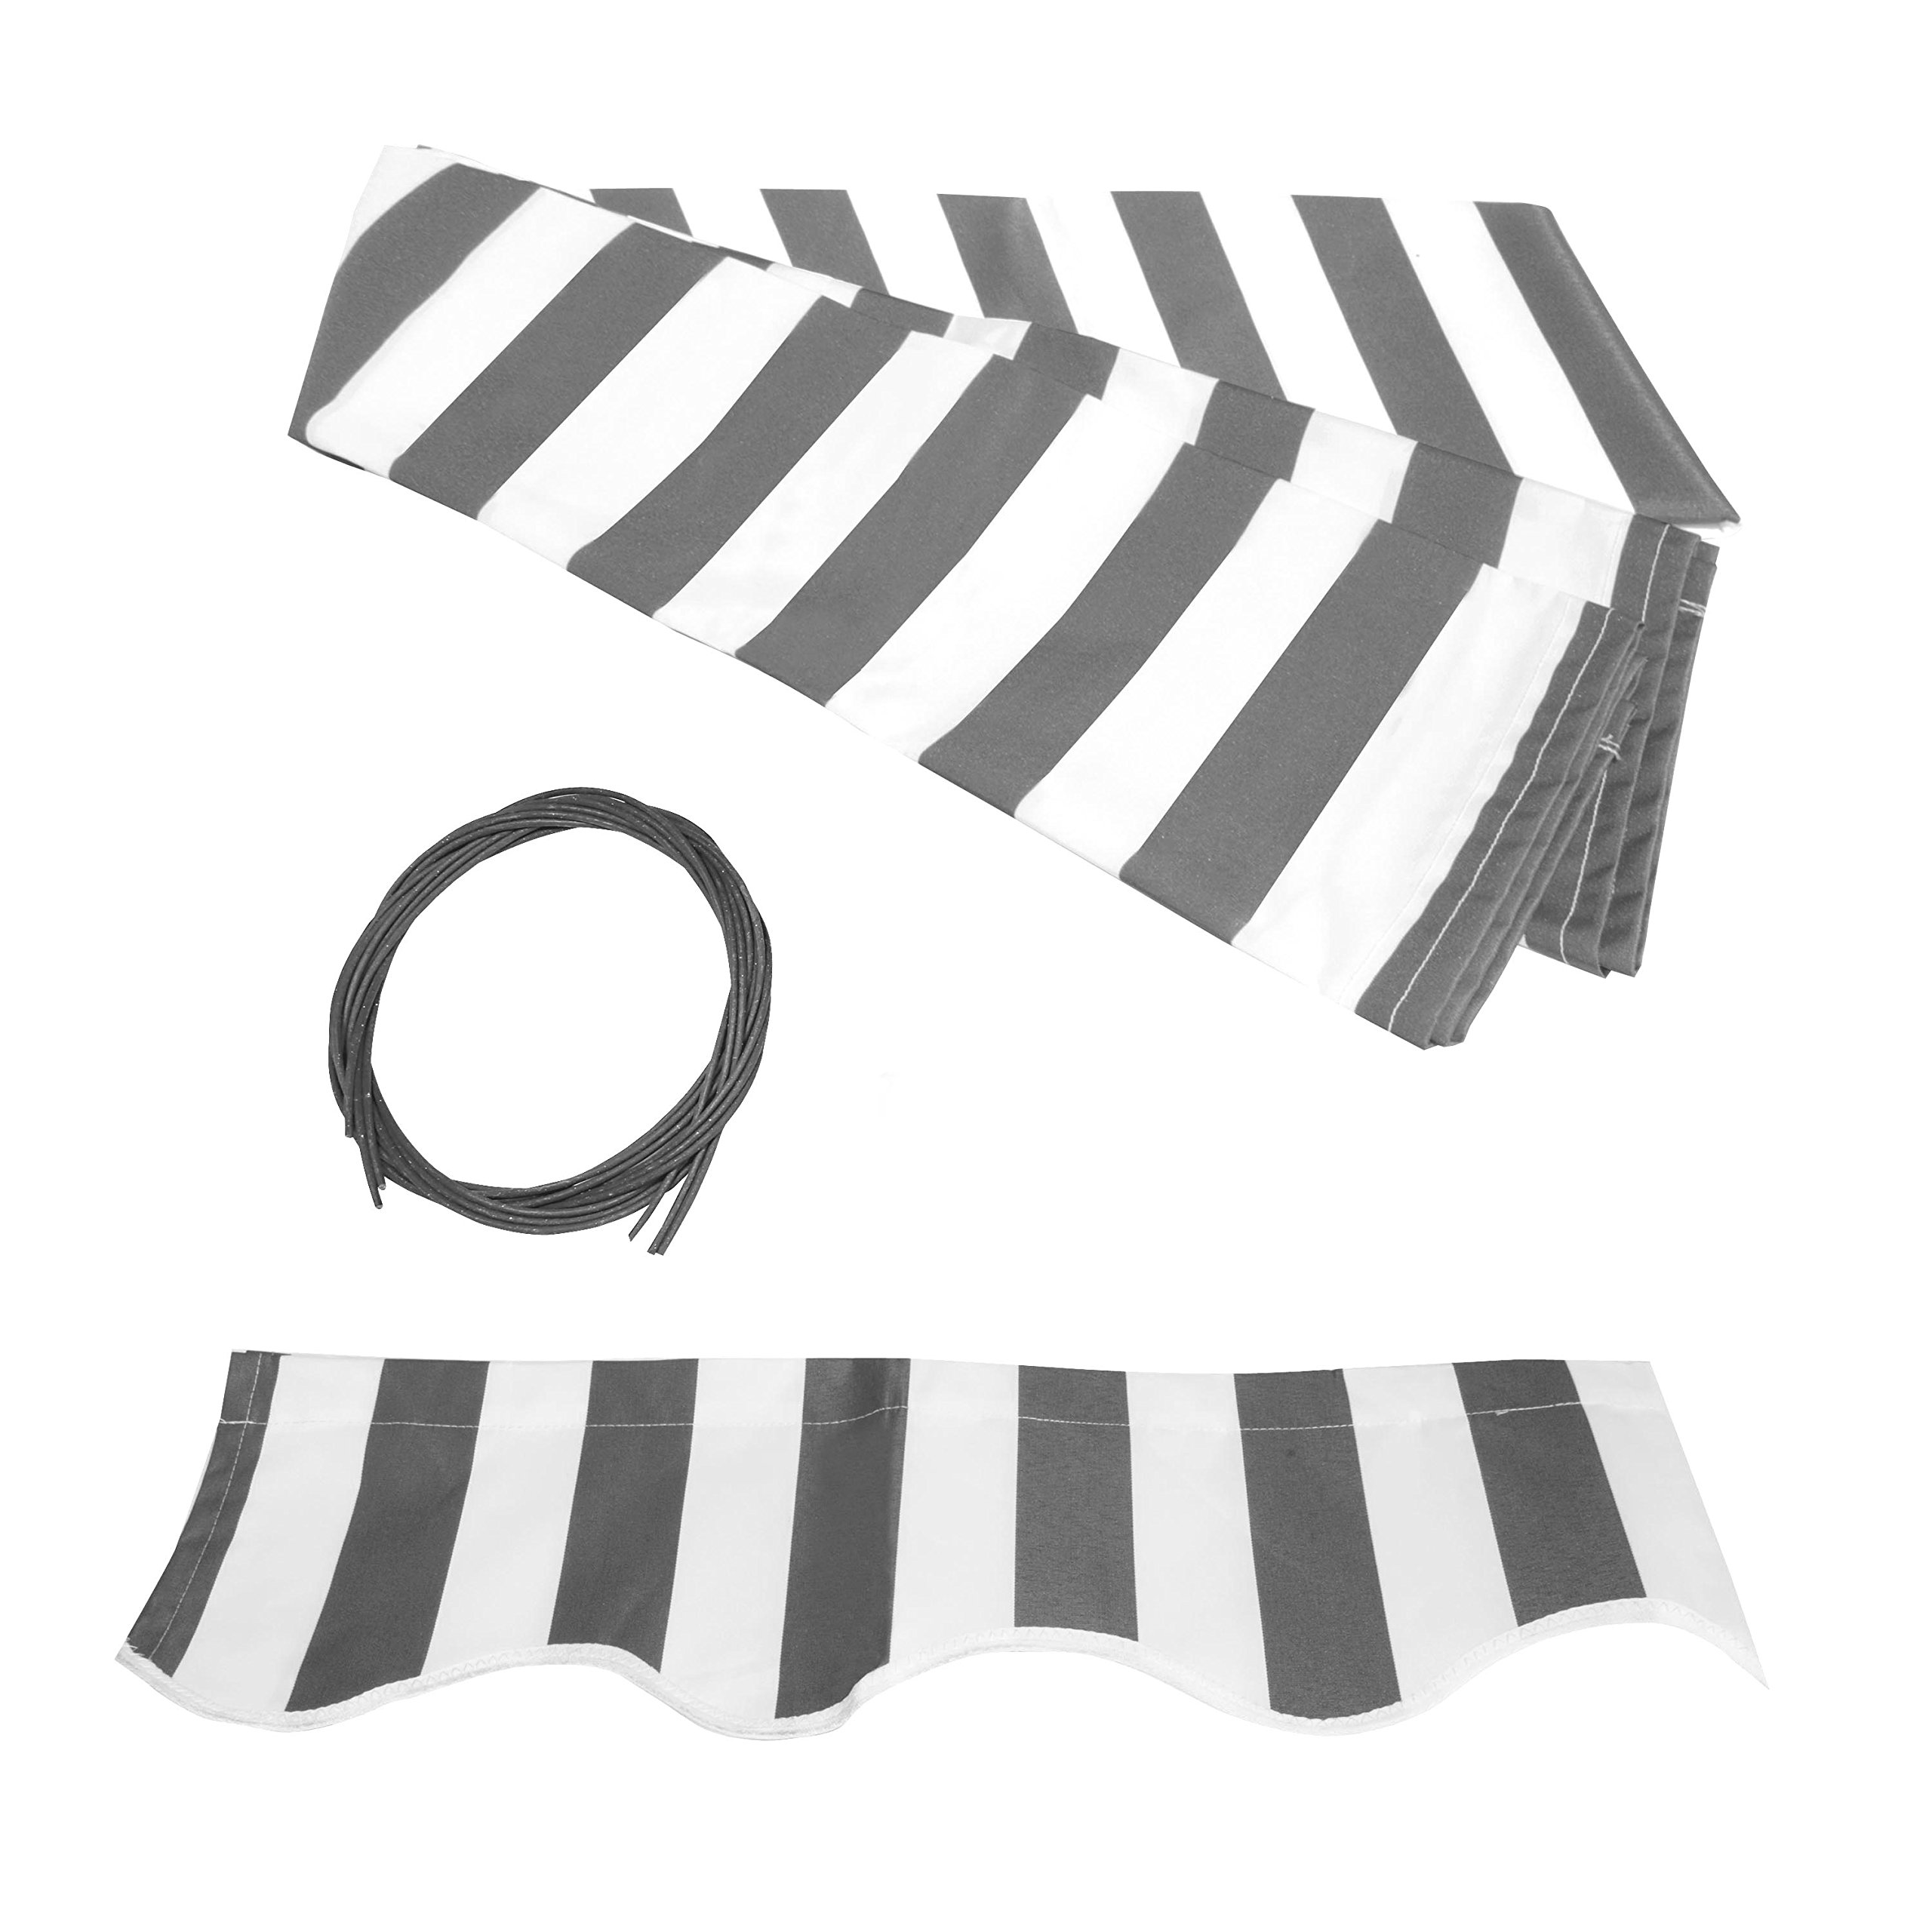 ALEKO FAB10X8GREYWHT Retractable Awning Fabric Replacement 10 x 8 Feet Gray and White Striped